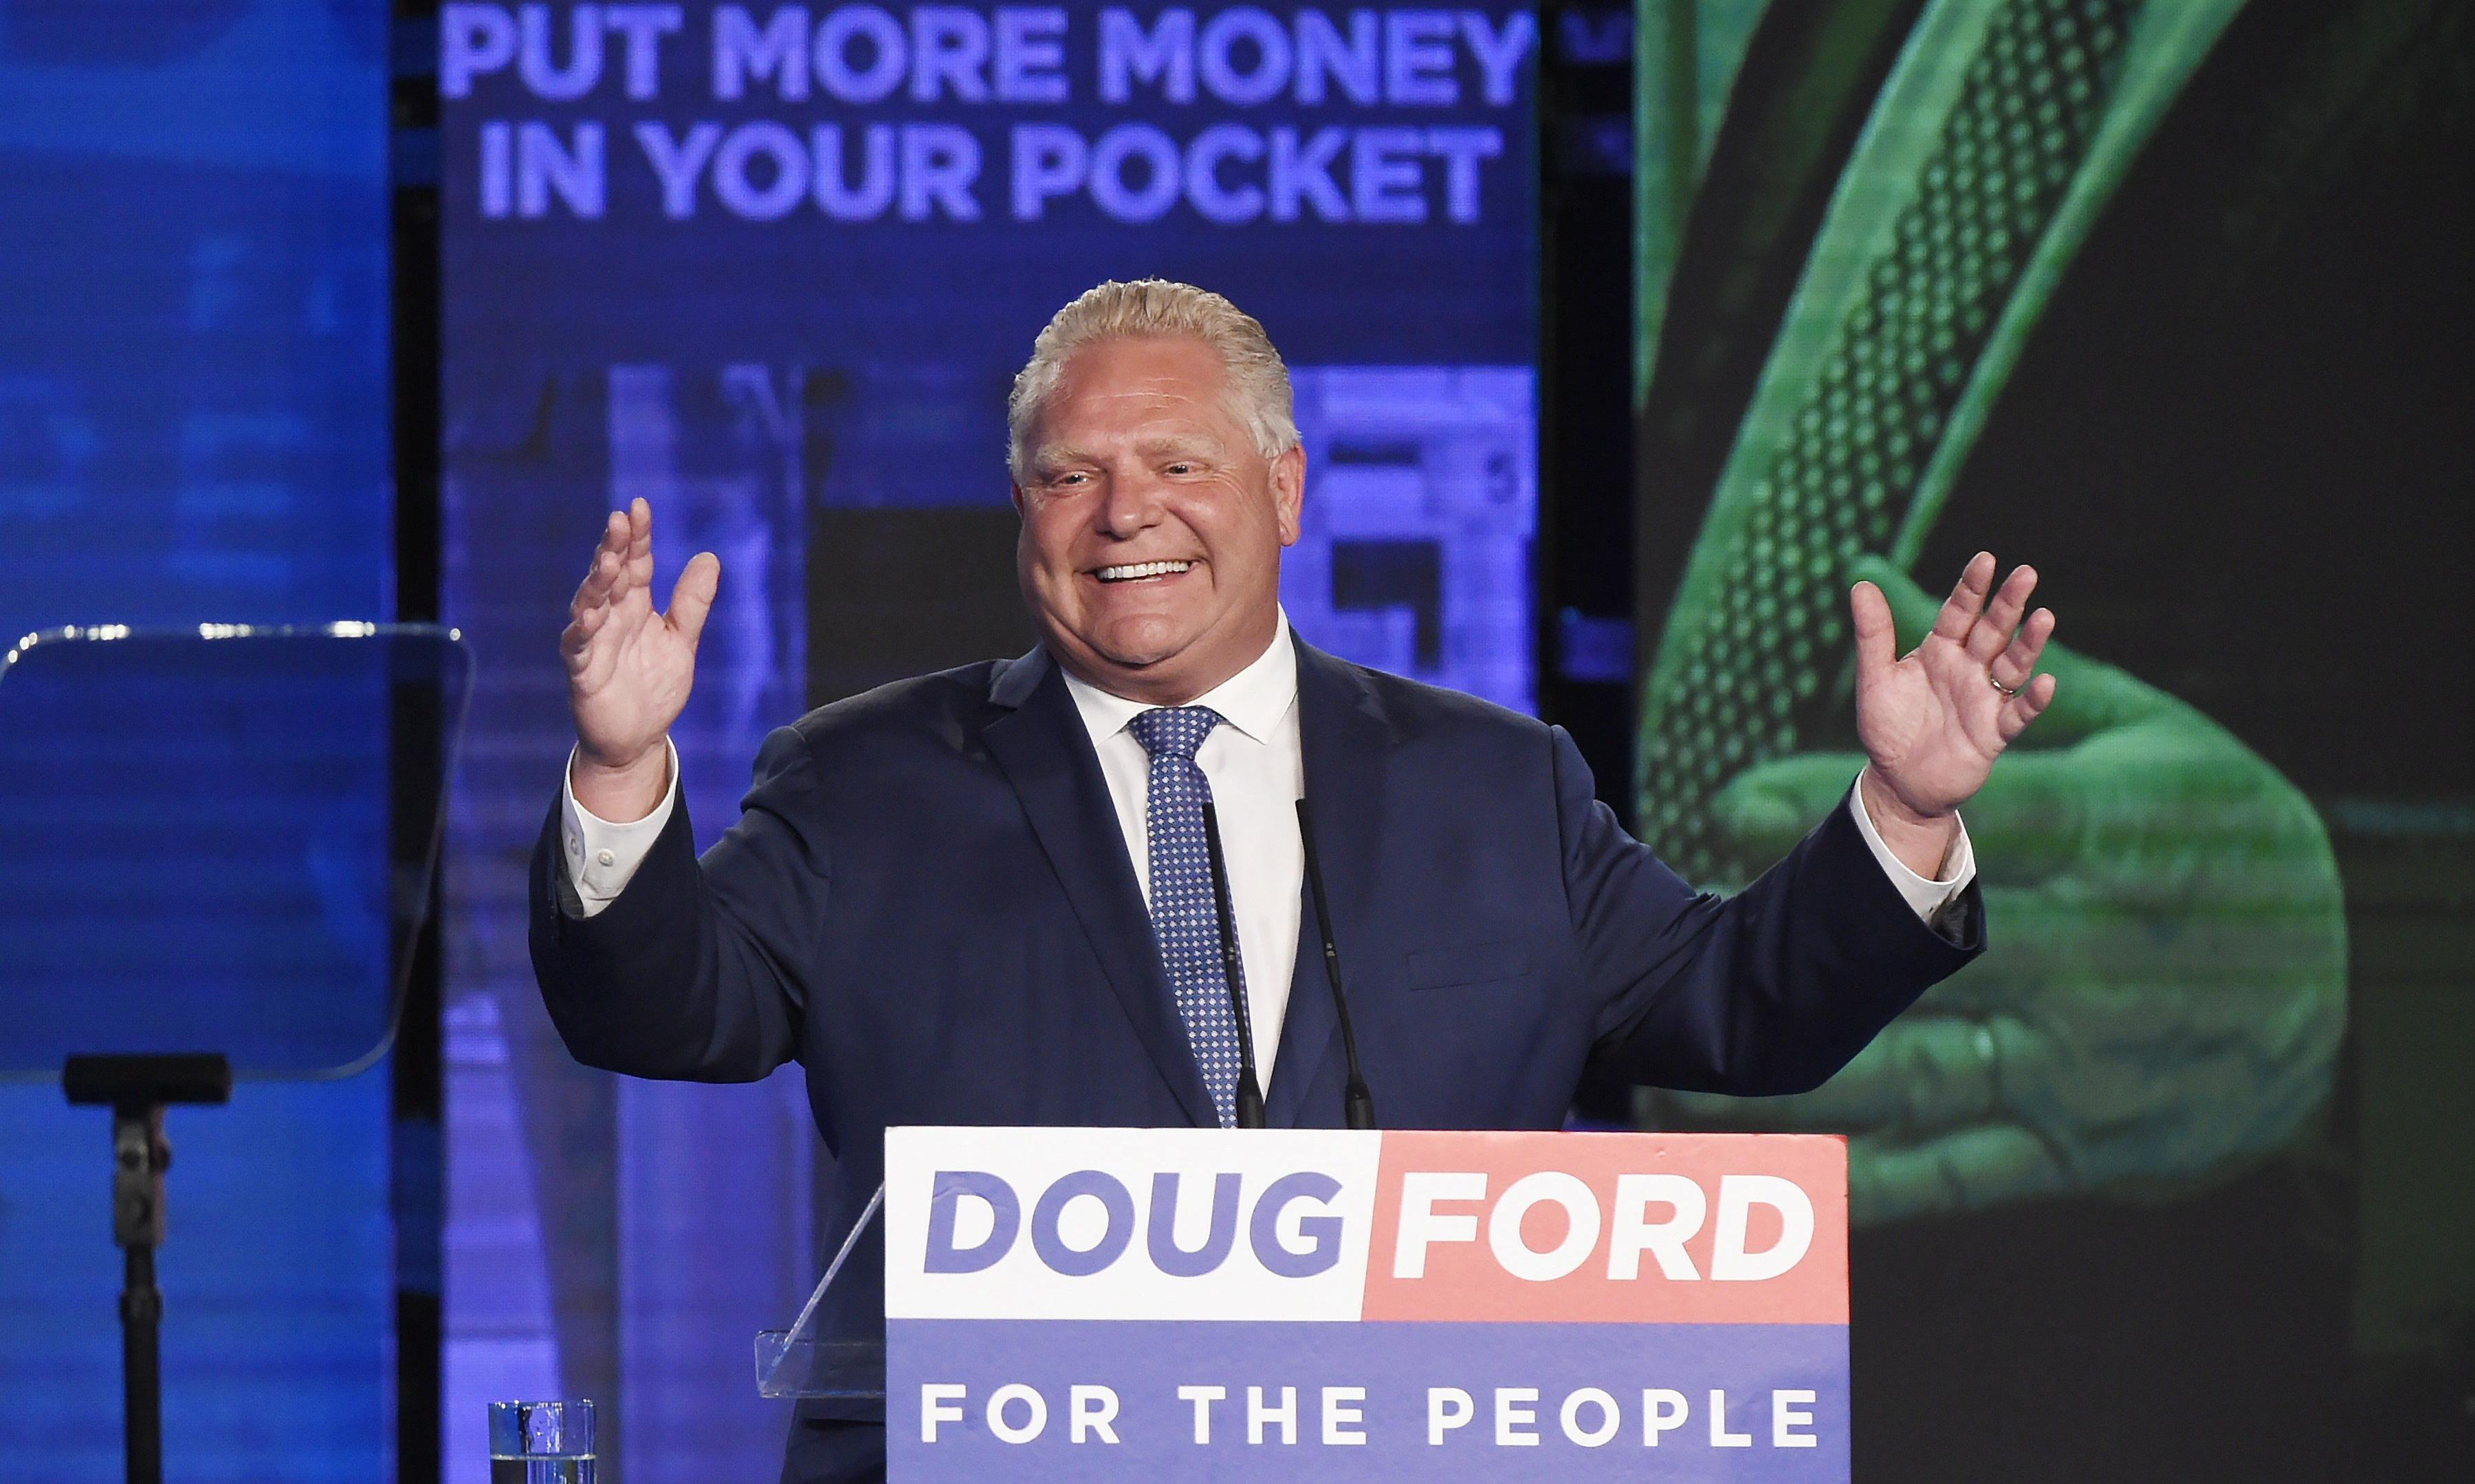 Canada: why Doug Ford is kryptonite for Conservatives' election hopes